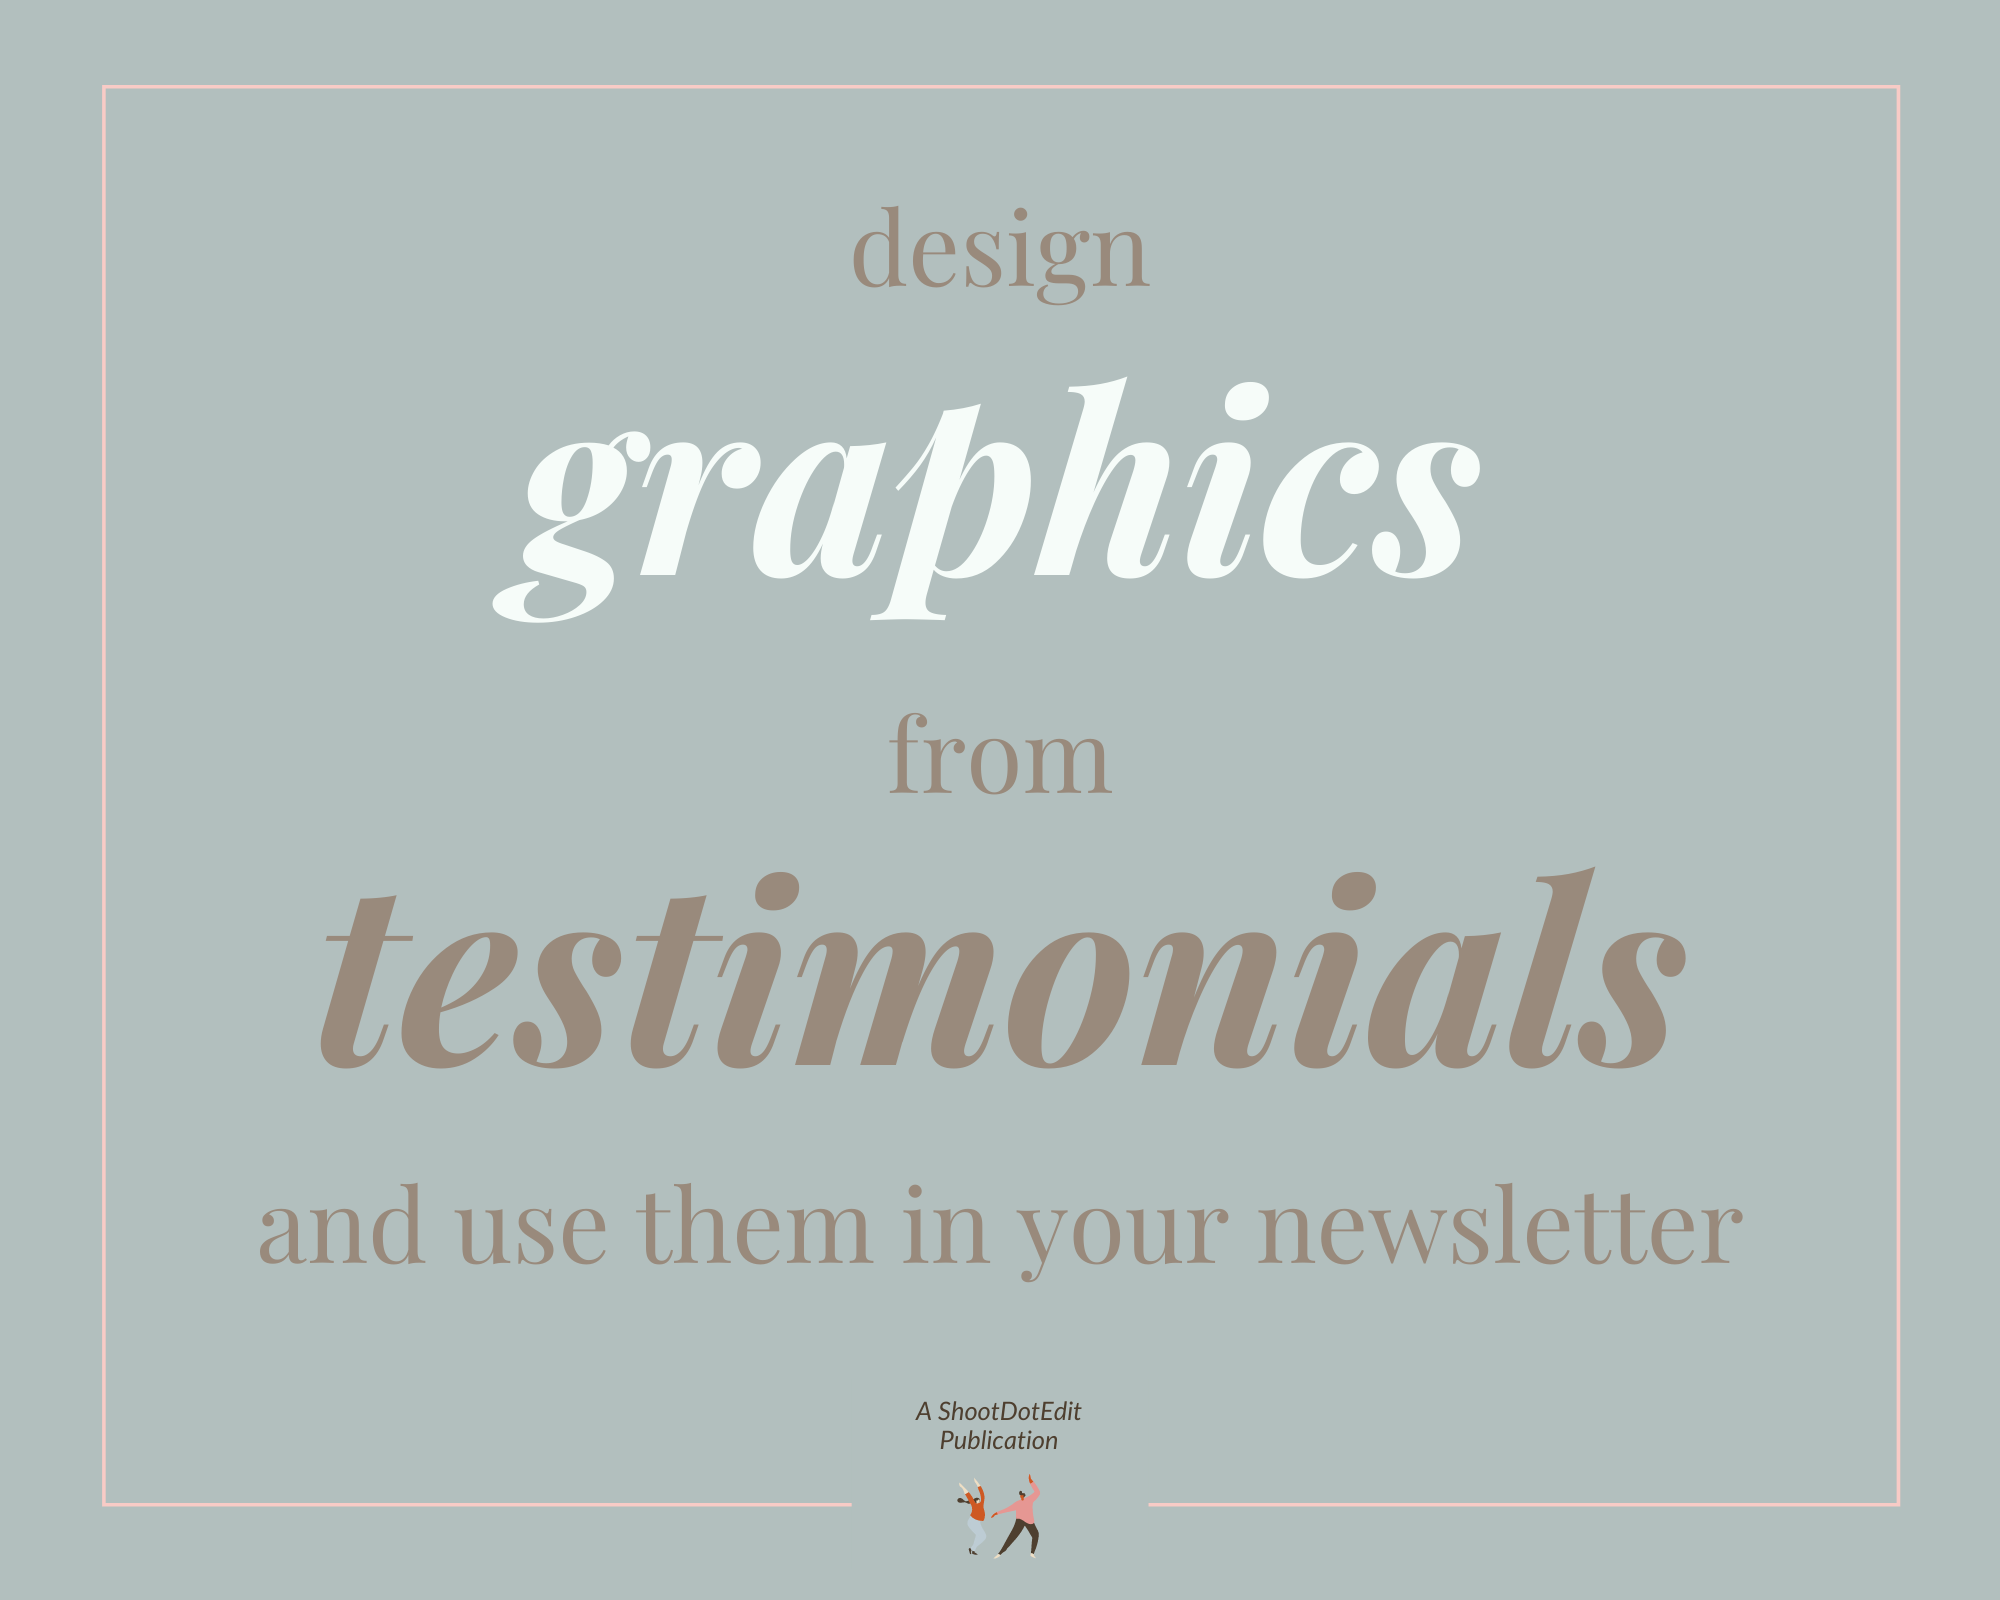 Infographic stating design graphics from testimonials and use them in your newsletter